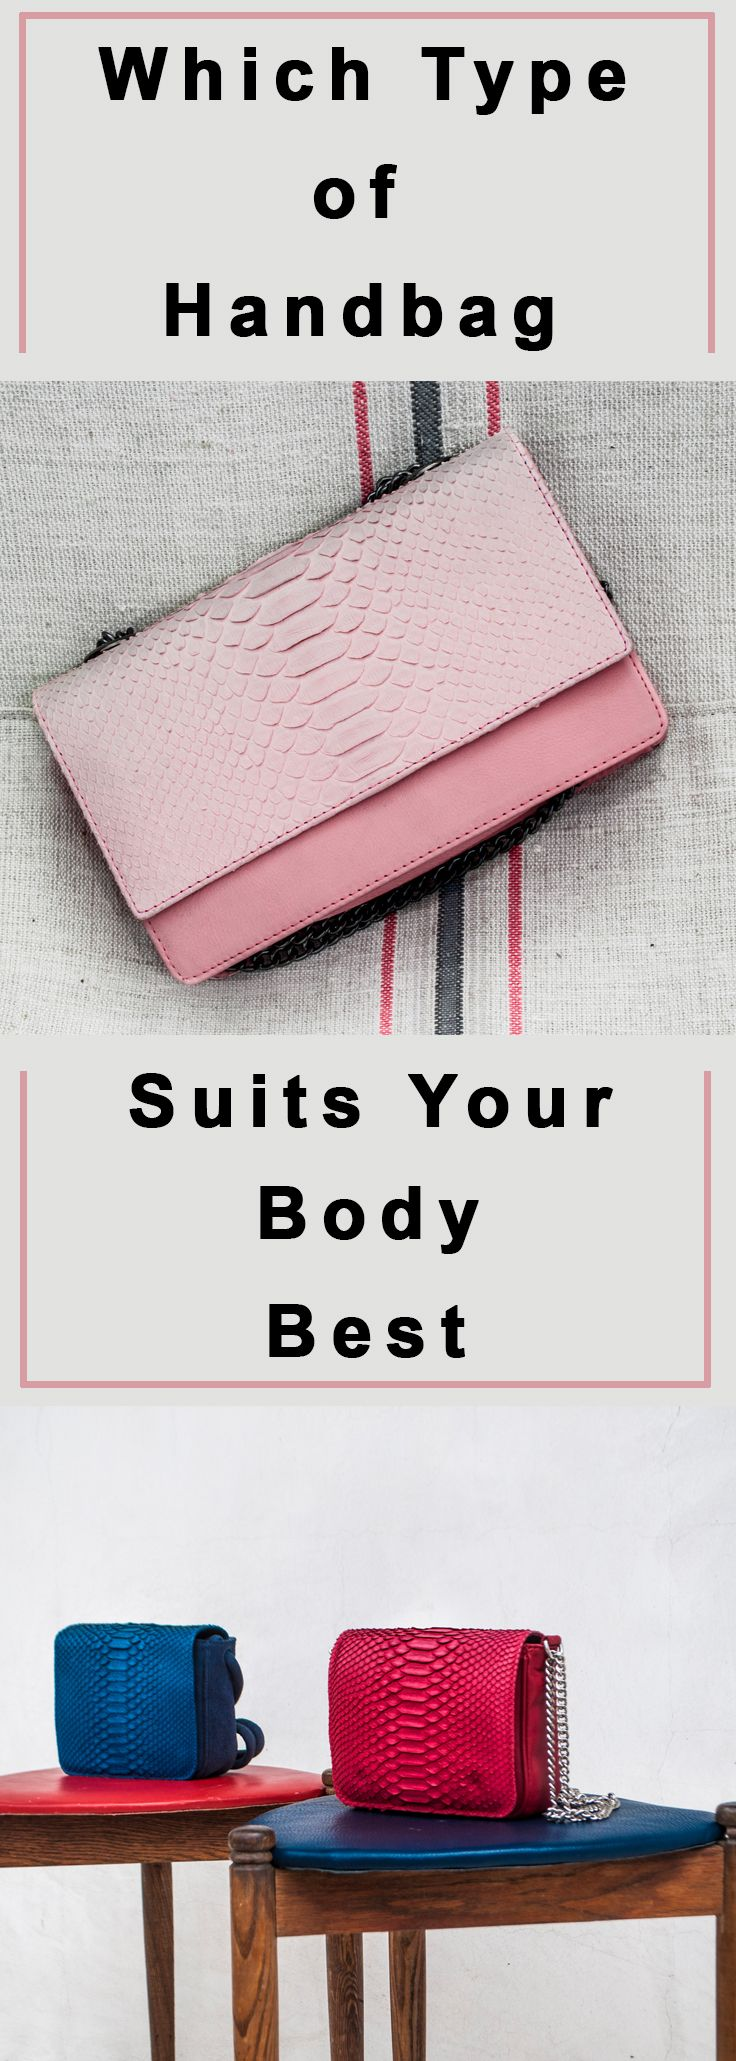 Which Type of Handbag Suits Your Body Best?